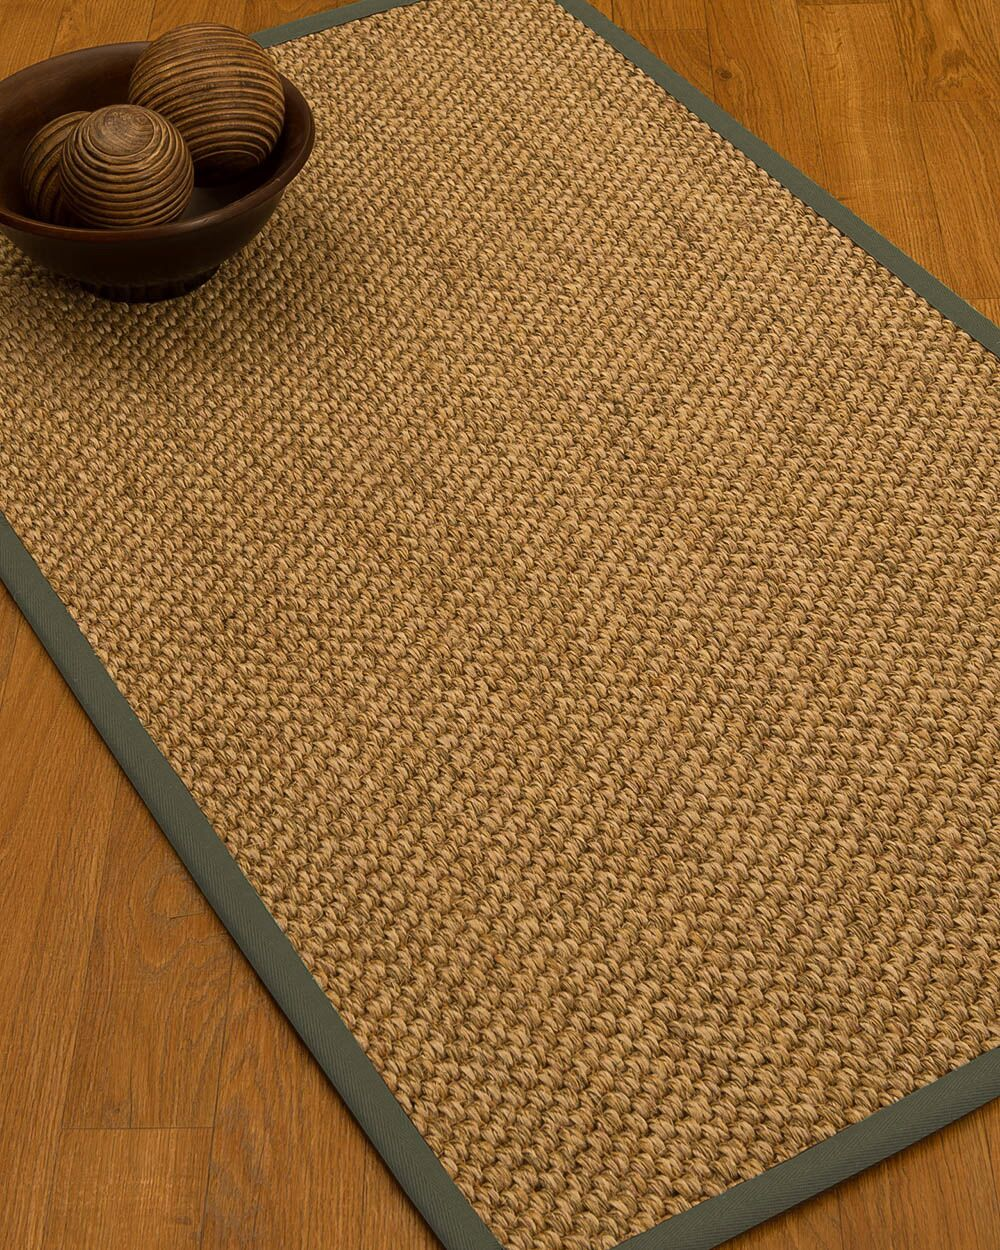 Heier Border Hand-Woven Brown/Stone Area Rug Rug Size: Rectangle 5' x 8', Rug Pad Included: Yes